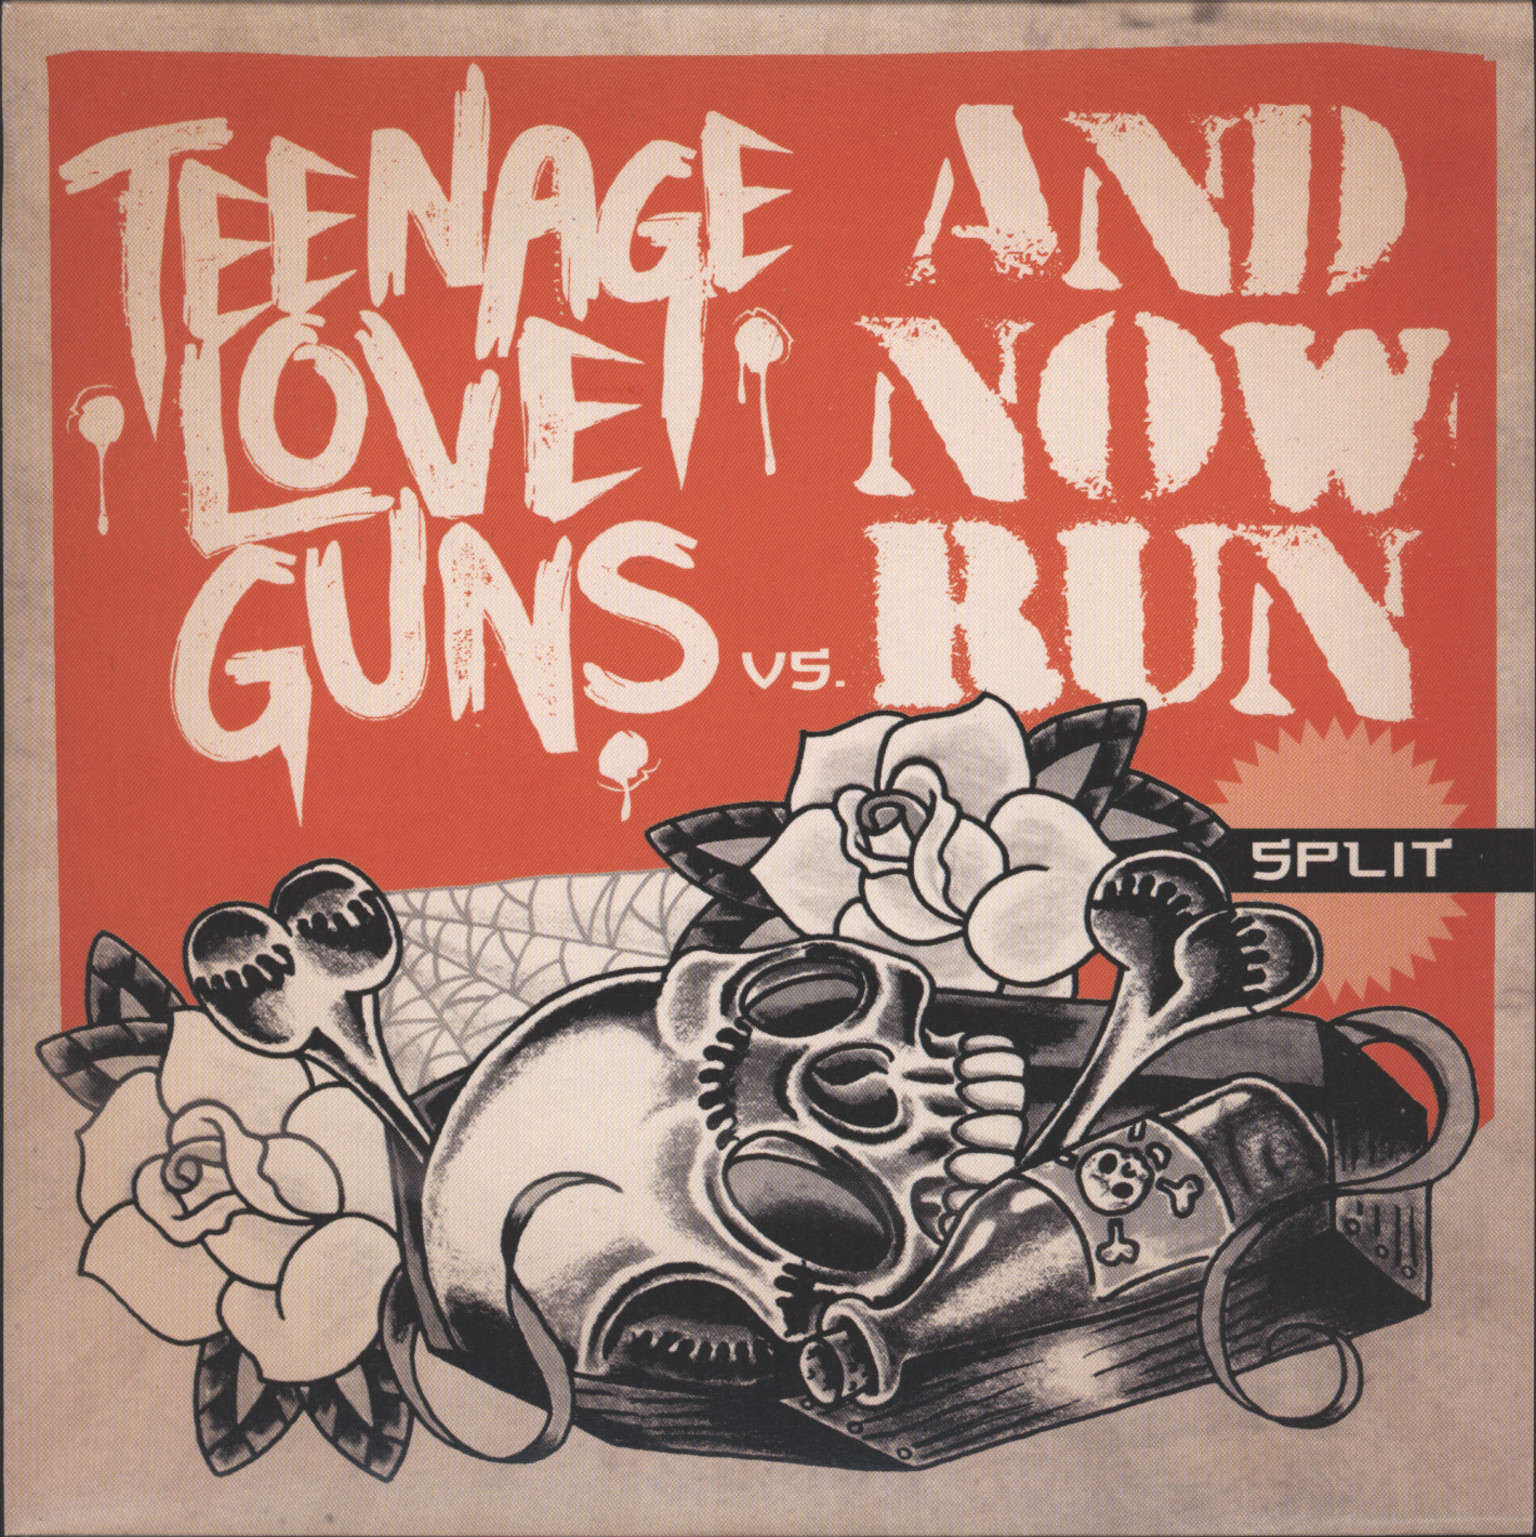 "Teenage Love Guns: Teenage Love Guns Vs. And Now Run Split, 7"" Single (Vinyl)"